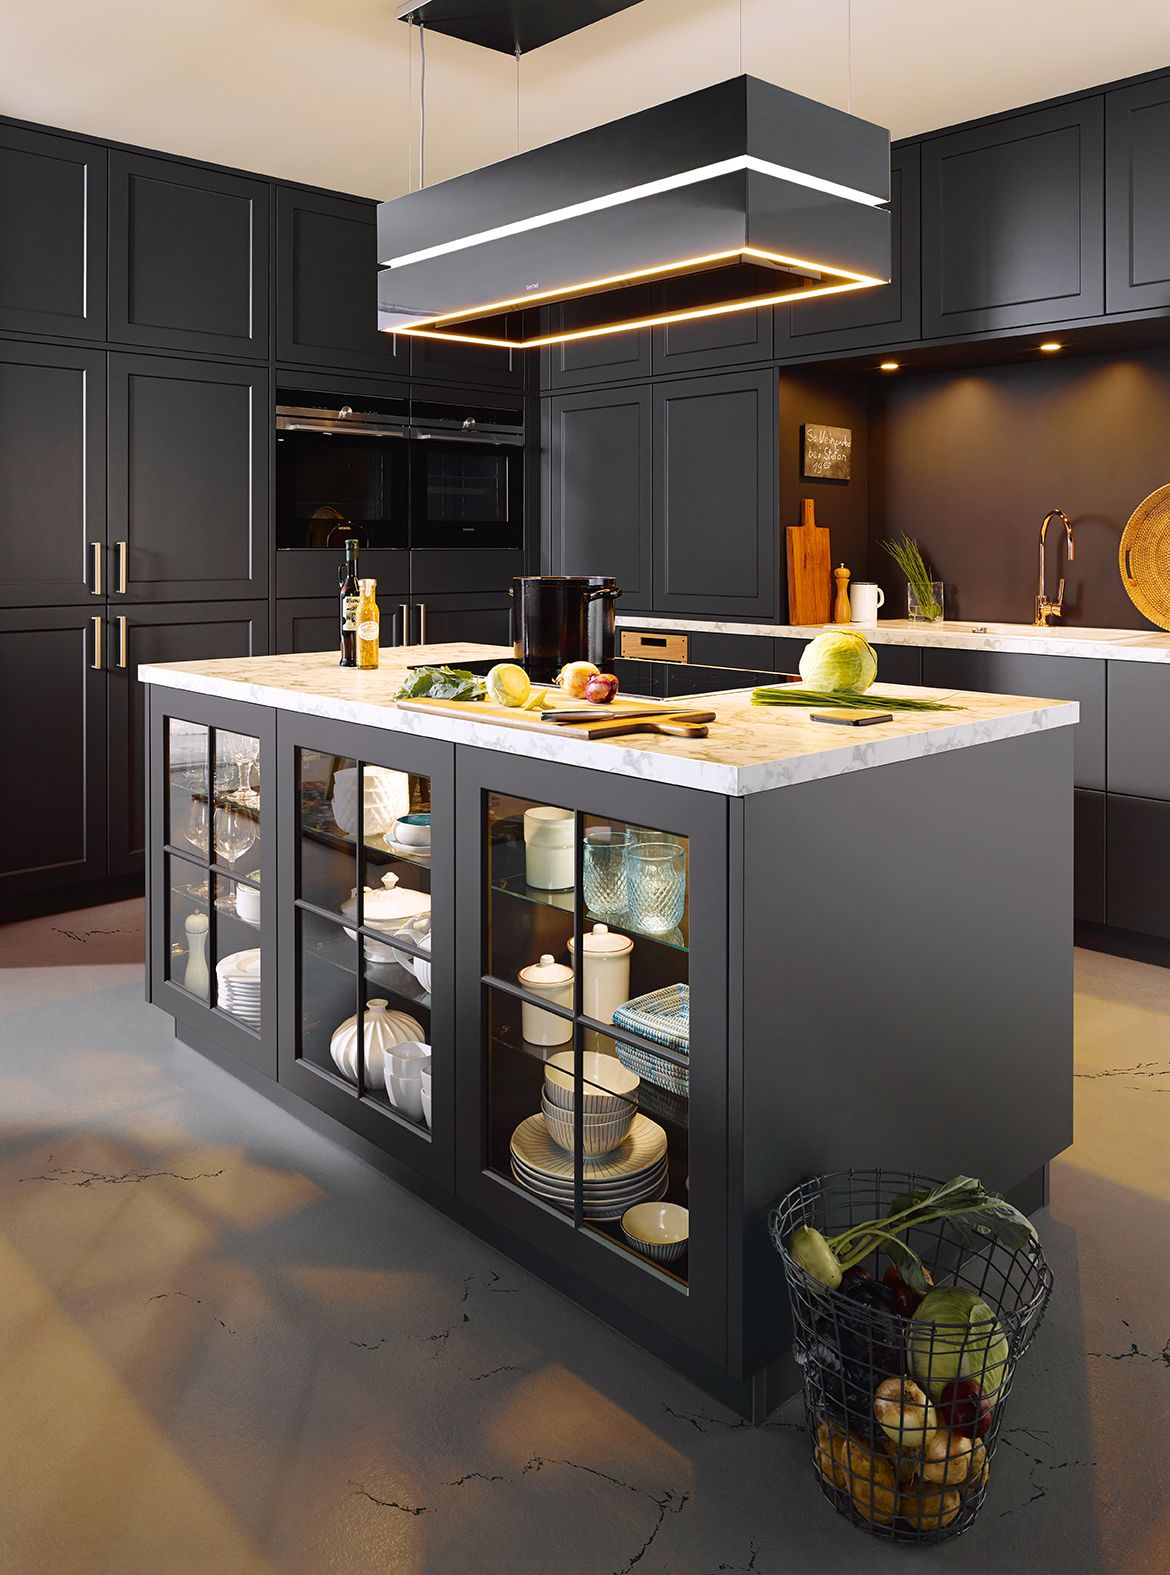 Schuller German Kitchens Vienna German Kitchen Design Modern Kitchen Interiors Luxury Kitchen Cabinets Kitchen Interior